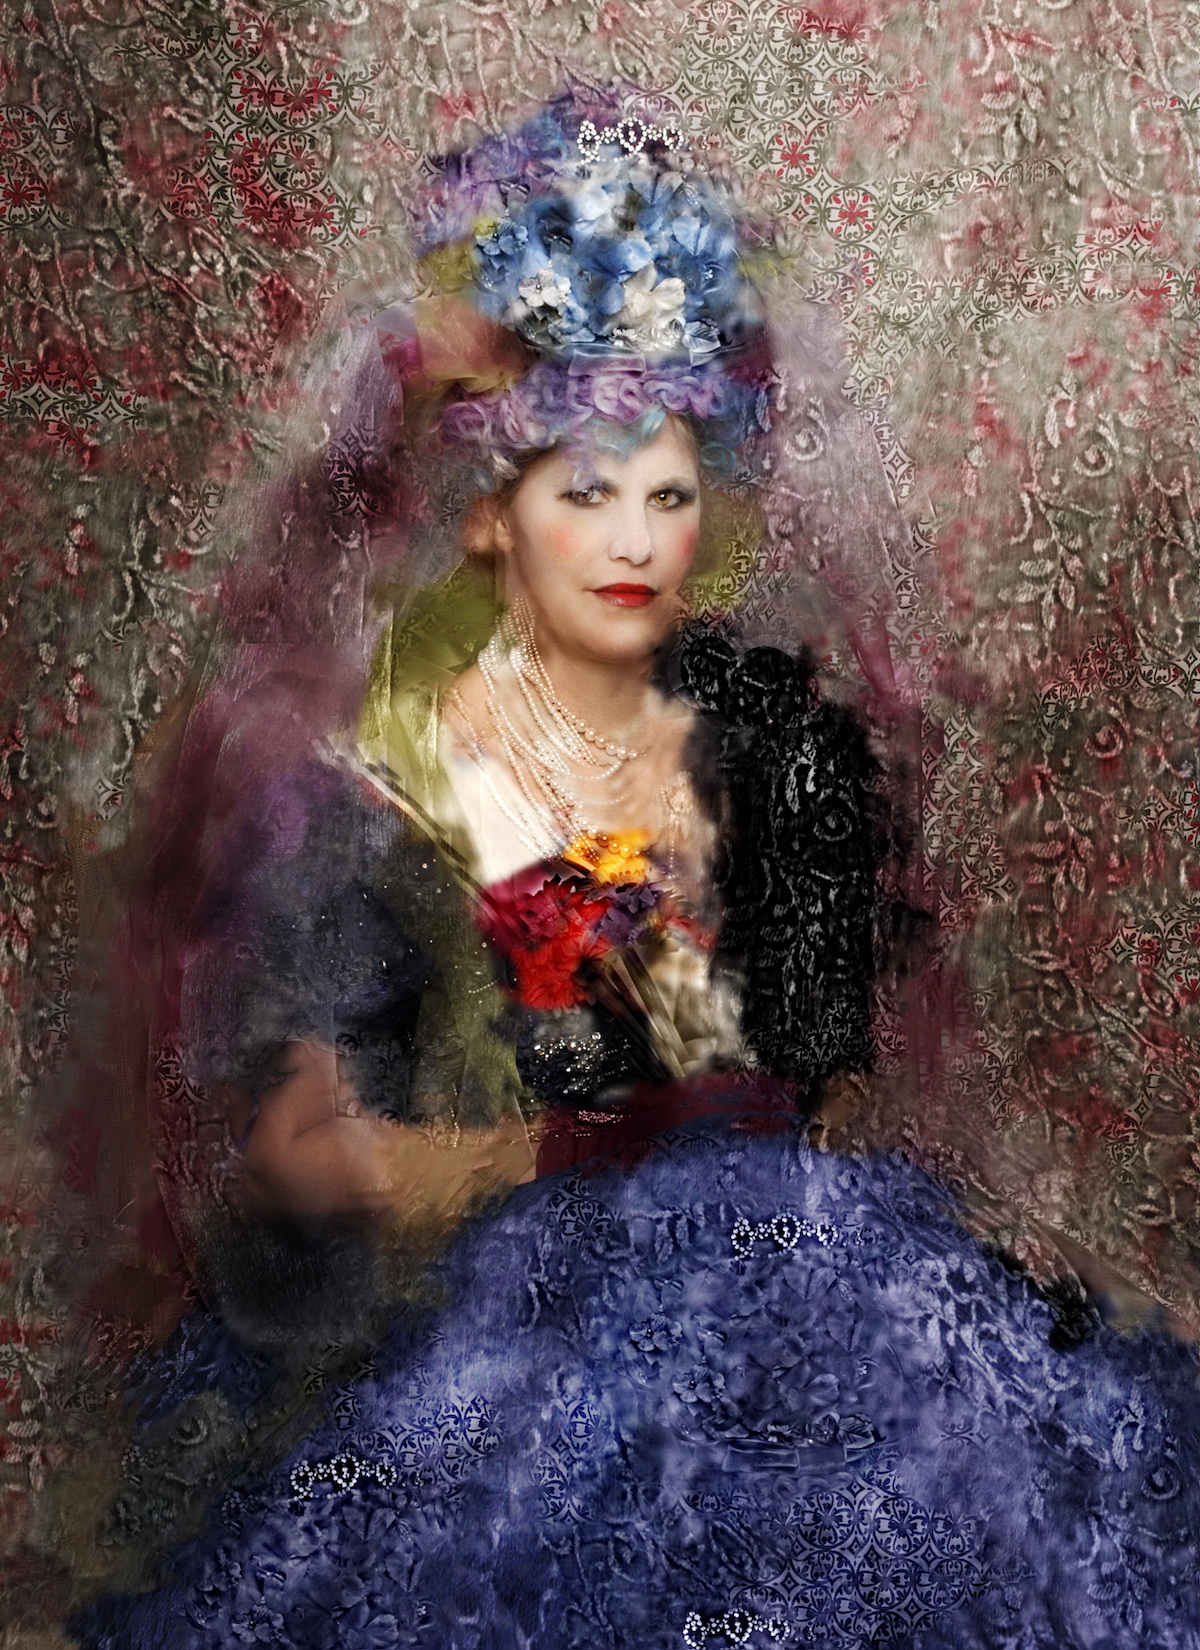 "Title lady in waiting Medium photography Size 20"" x 24"""